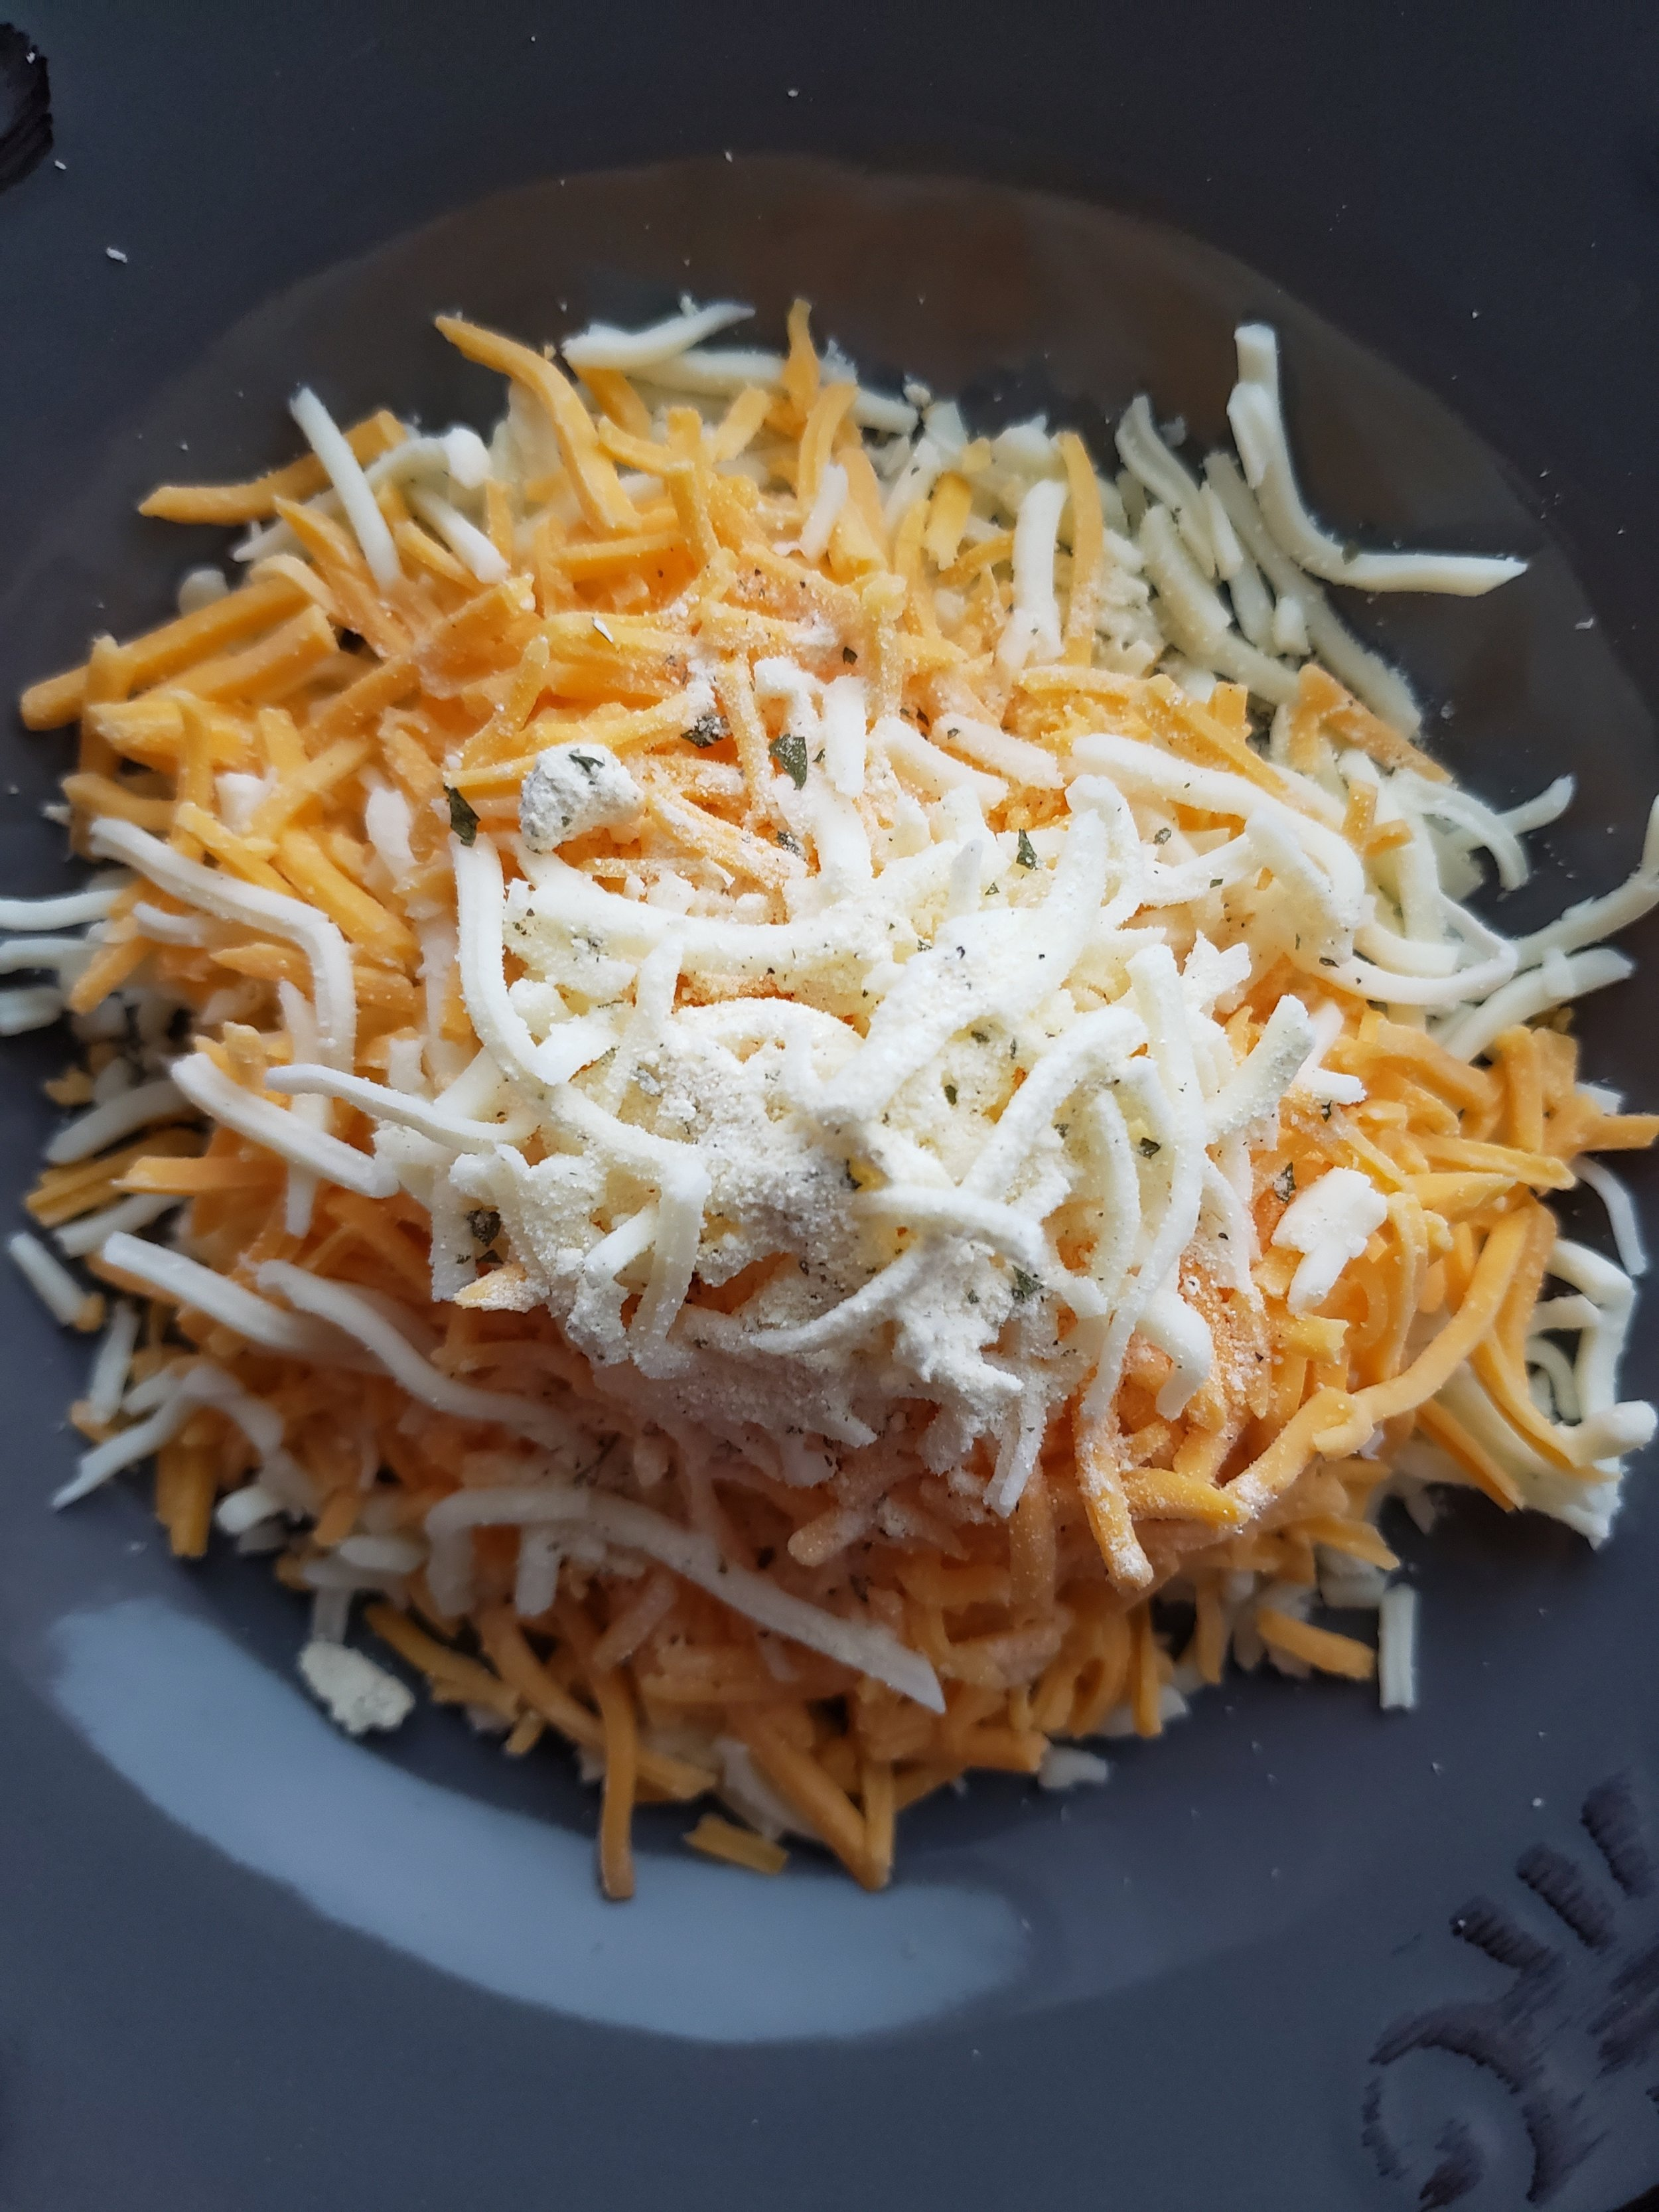 In a bowl mix whatever cheese and seasonings you want! Here is shredded cheddar, mozz, and dry ranch mix.